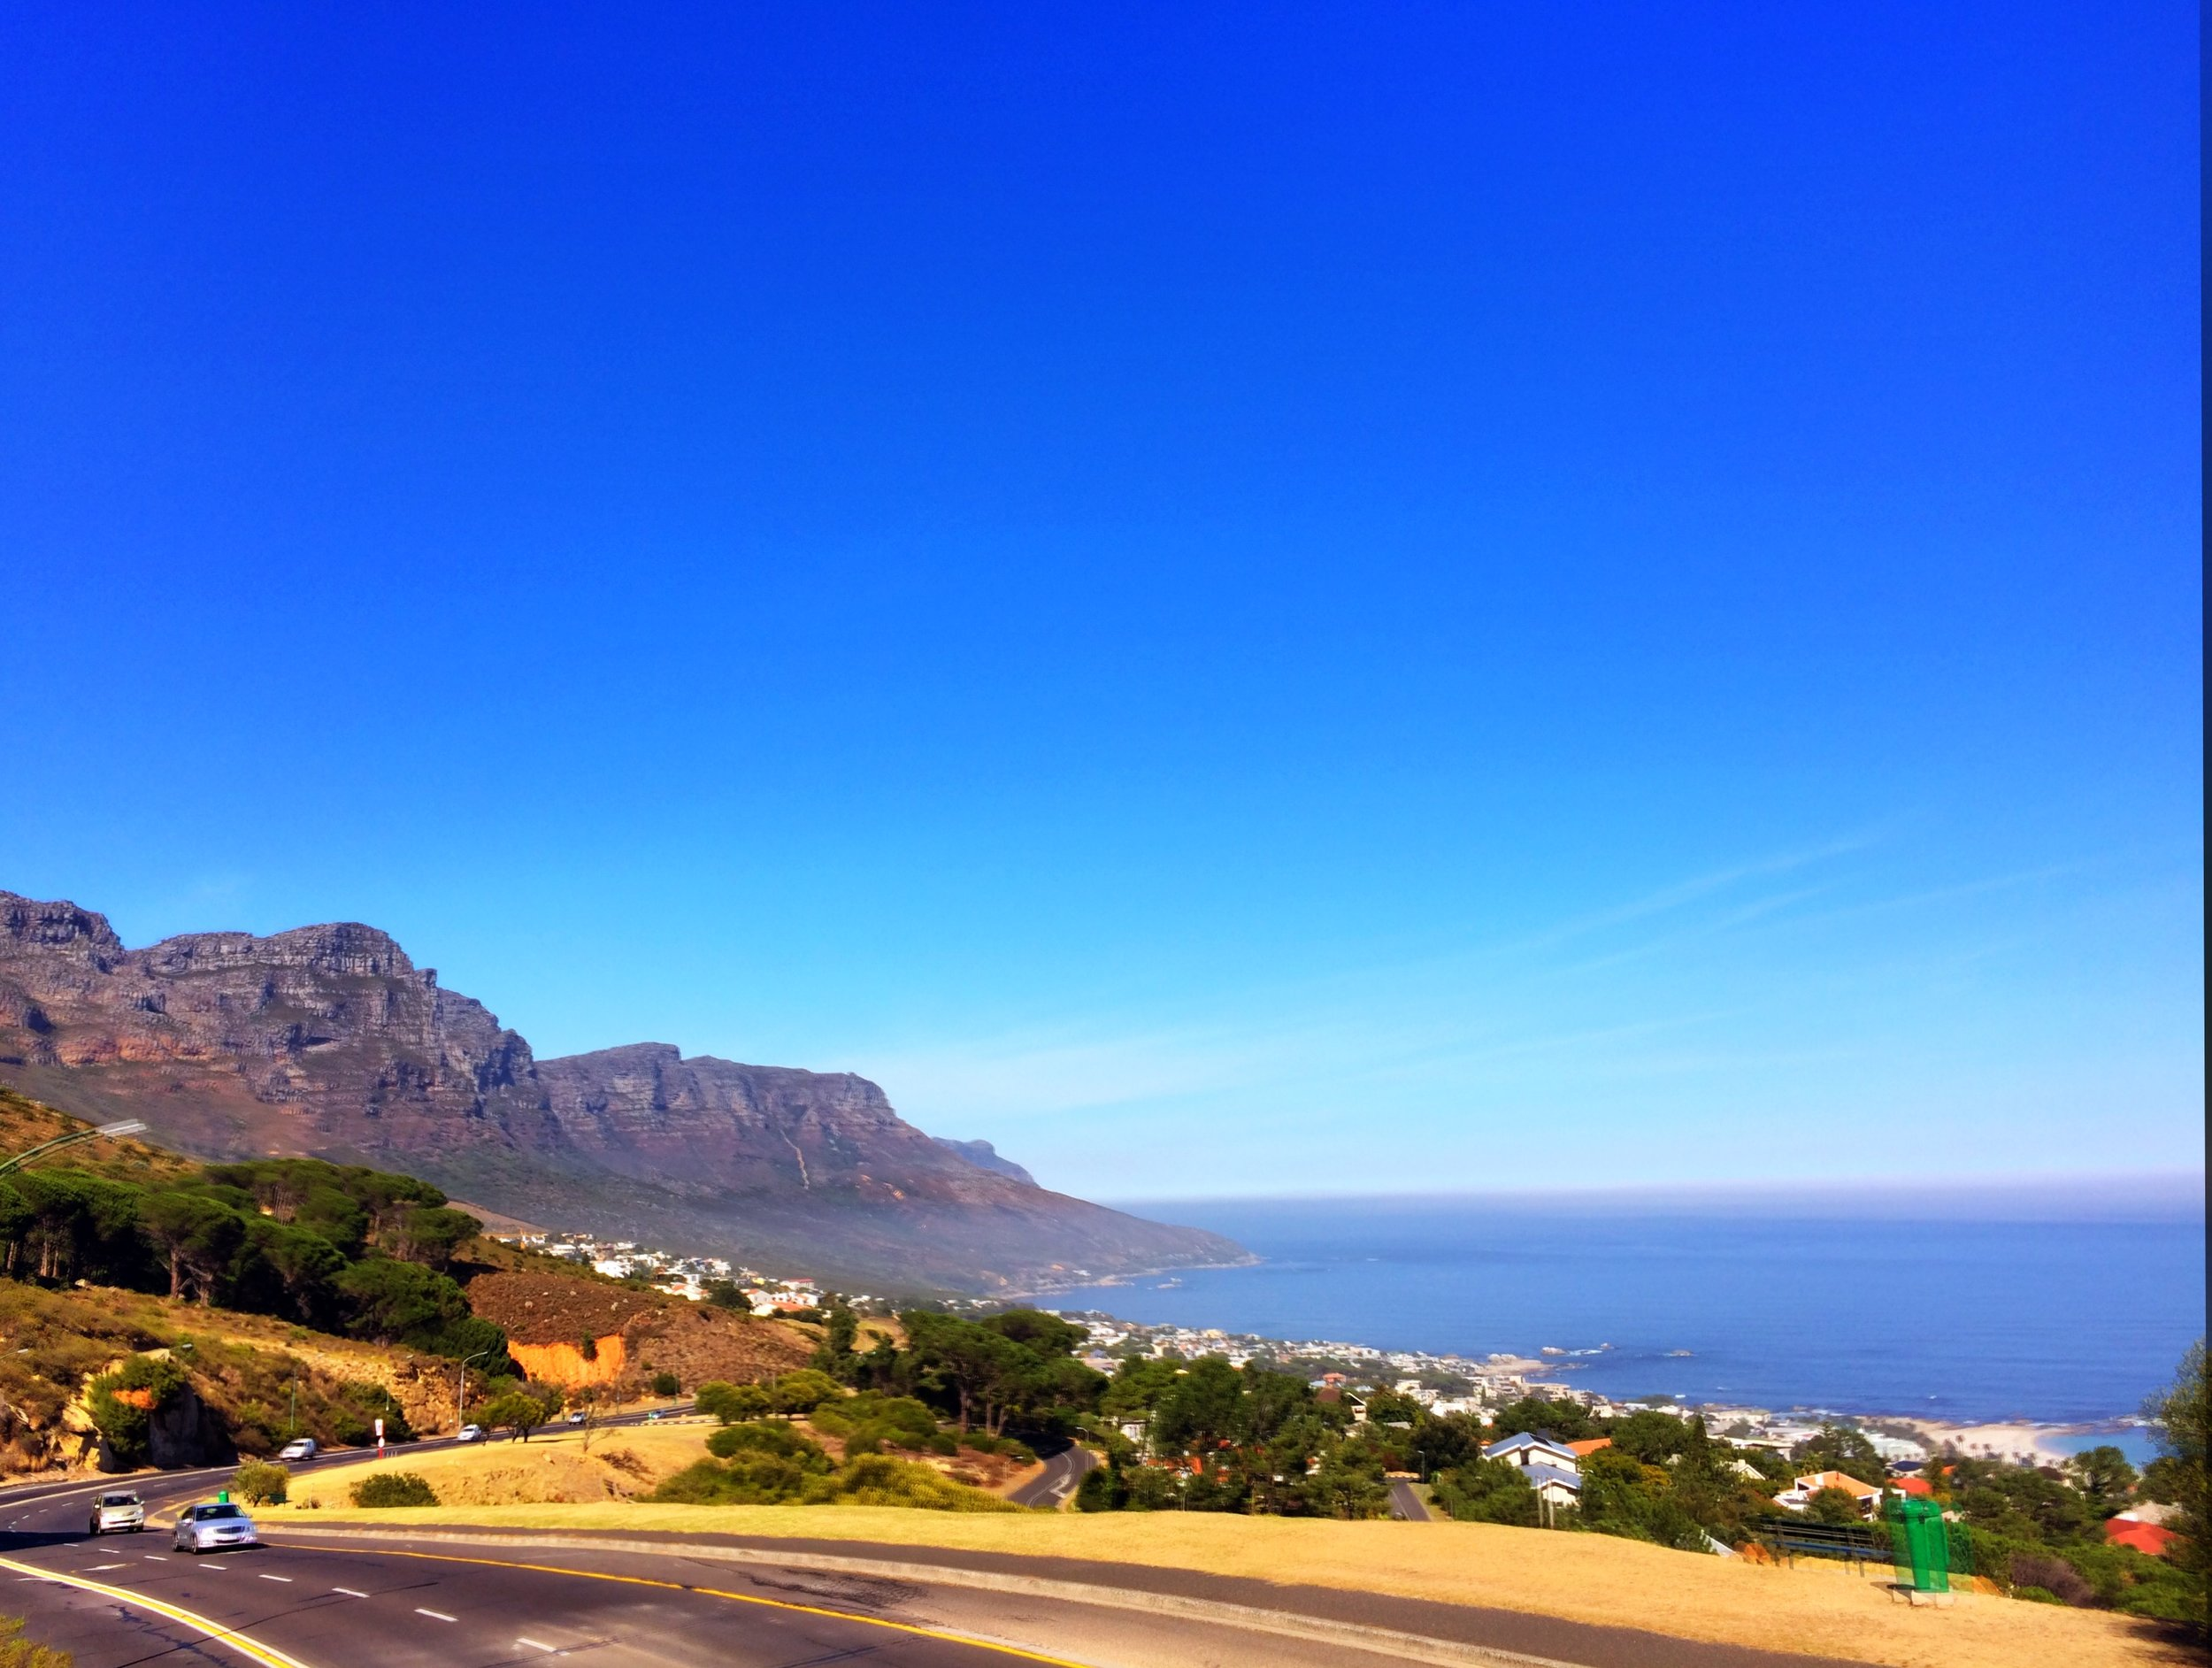 Cape Town itself is great, but there are lots of picturesque scenes all around the city